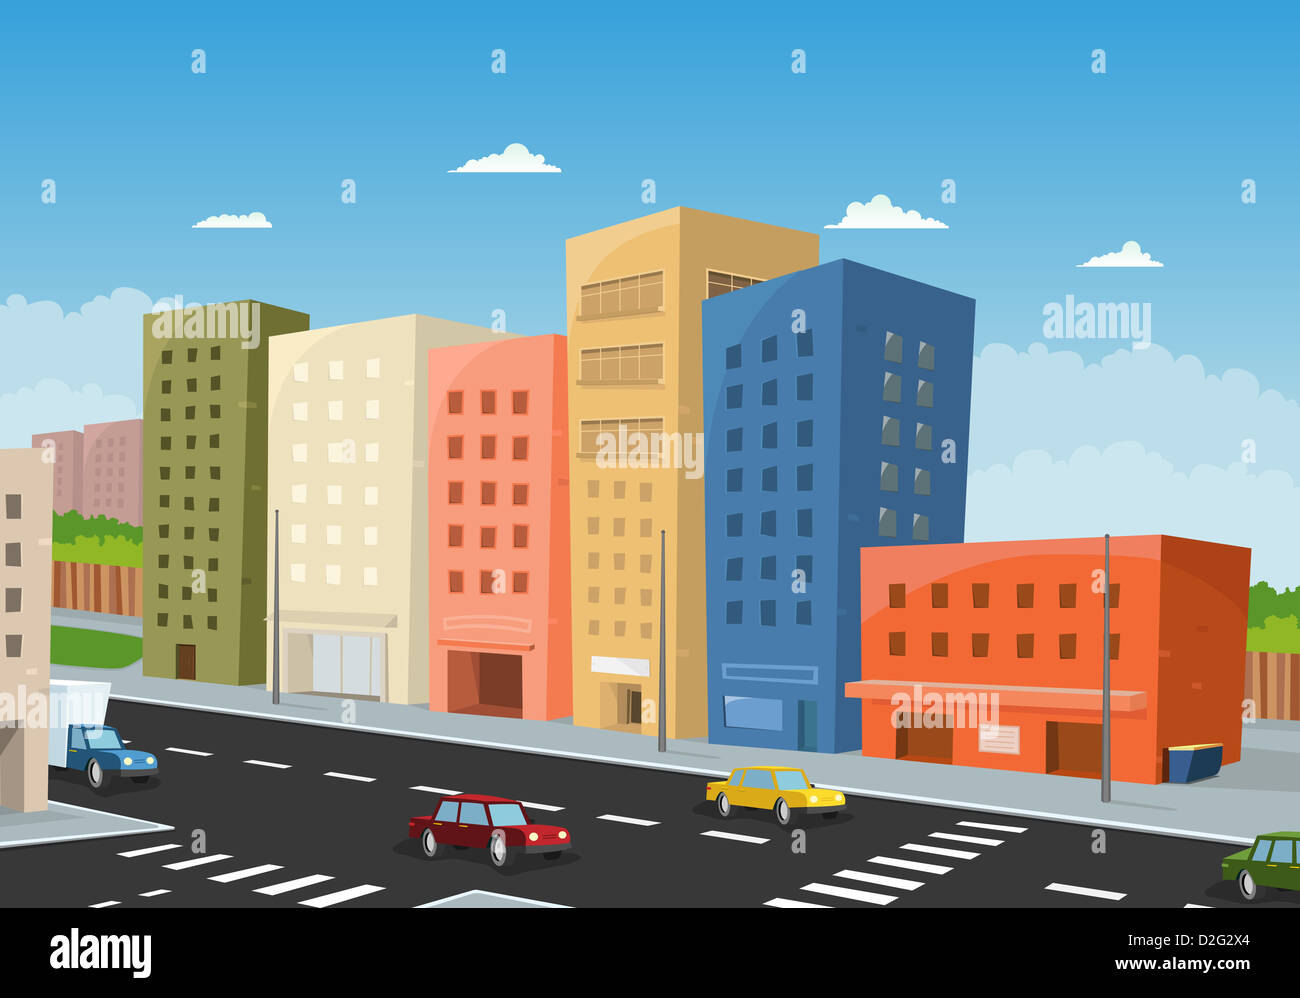 Illustration Of A Cartoon City Downtown, With Office